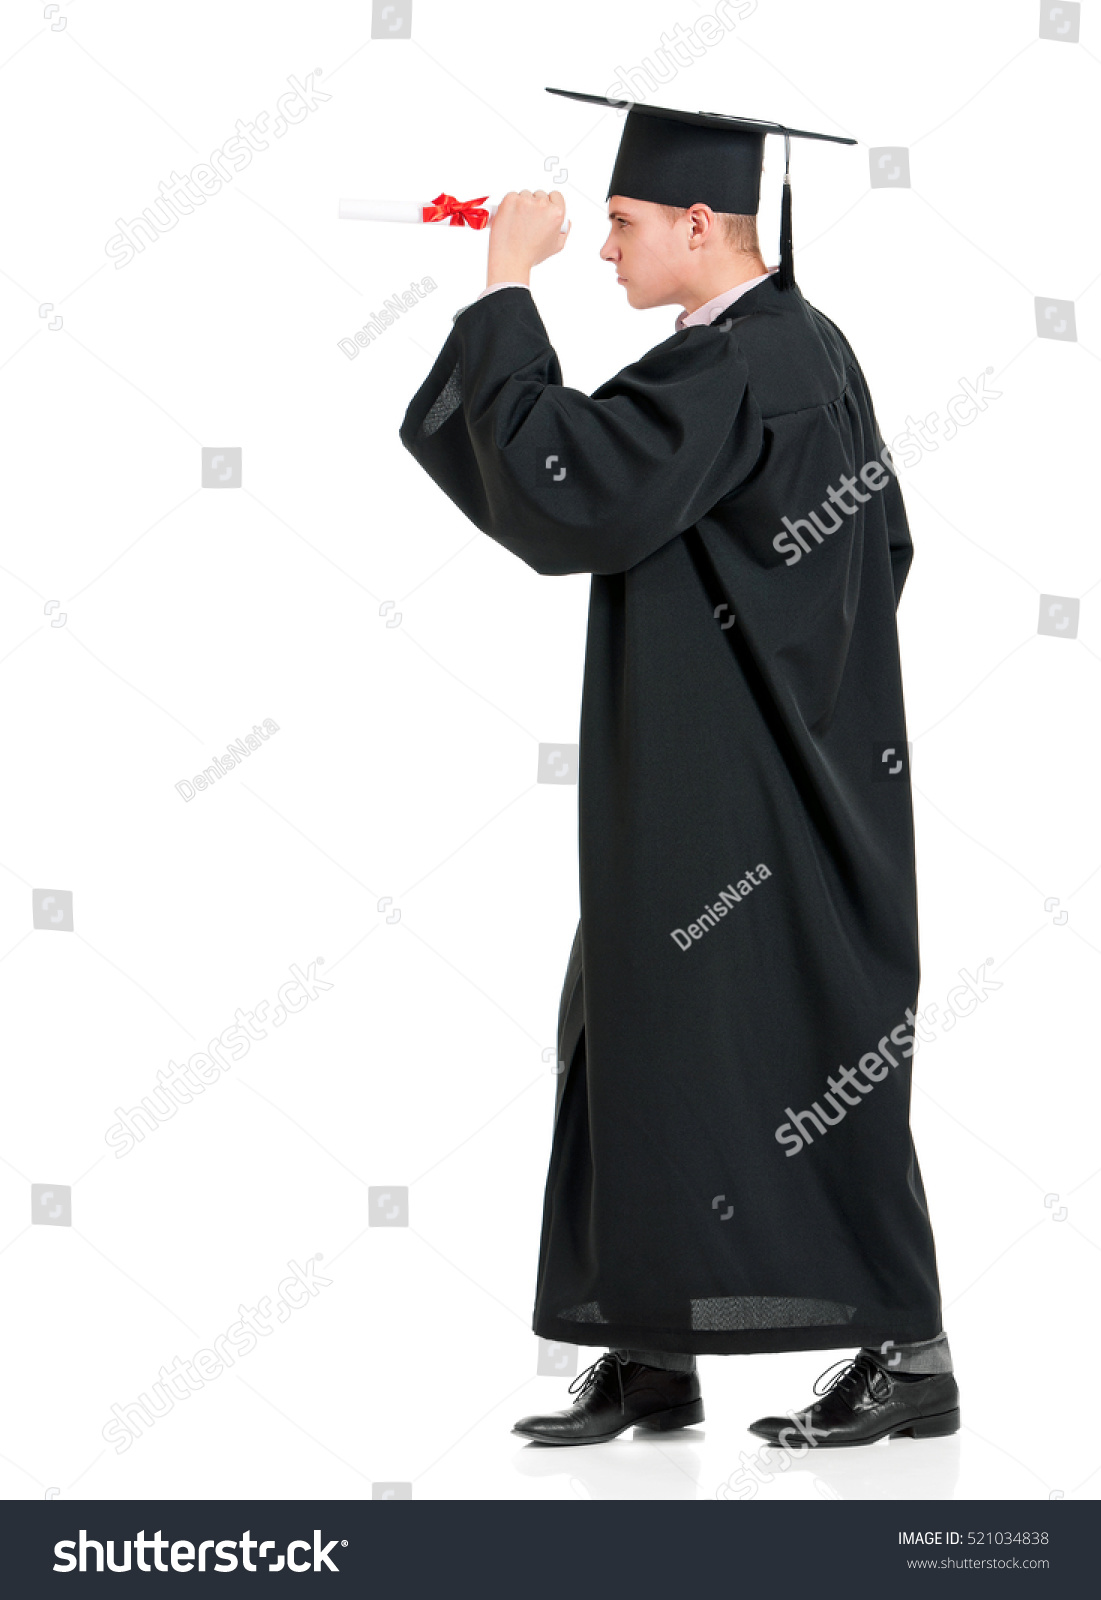 Portrait Man Academic Gown Holding Diploma Stock Photo (Safe to Use ...